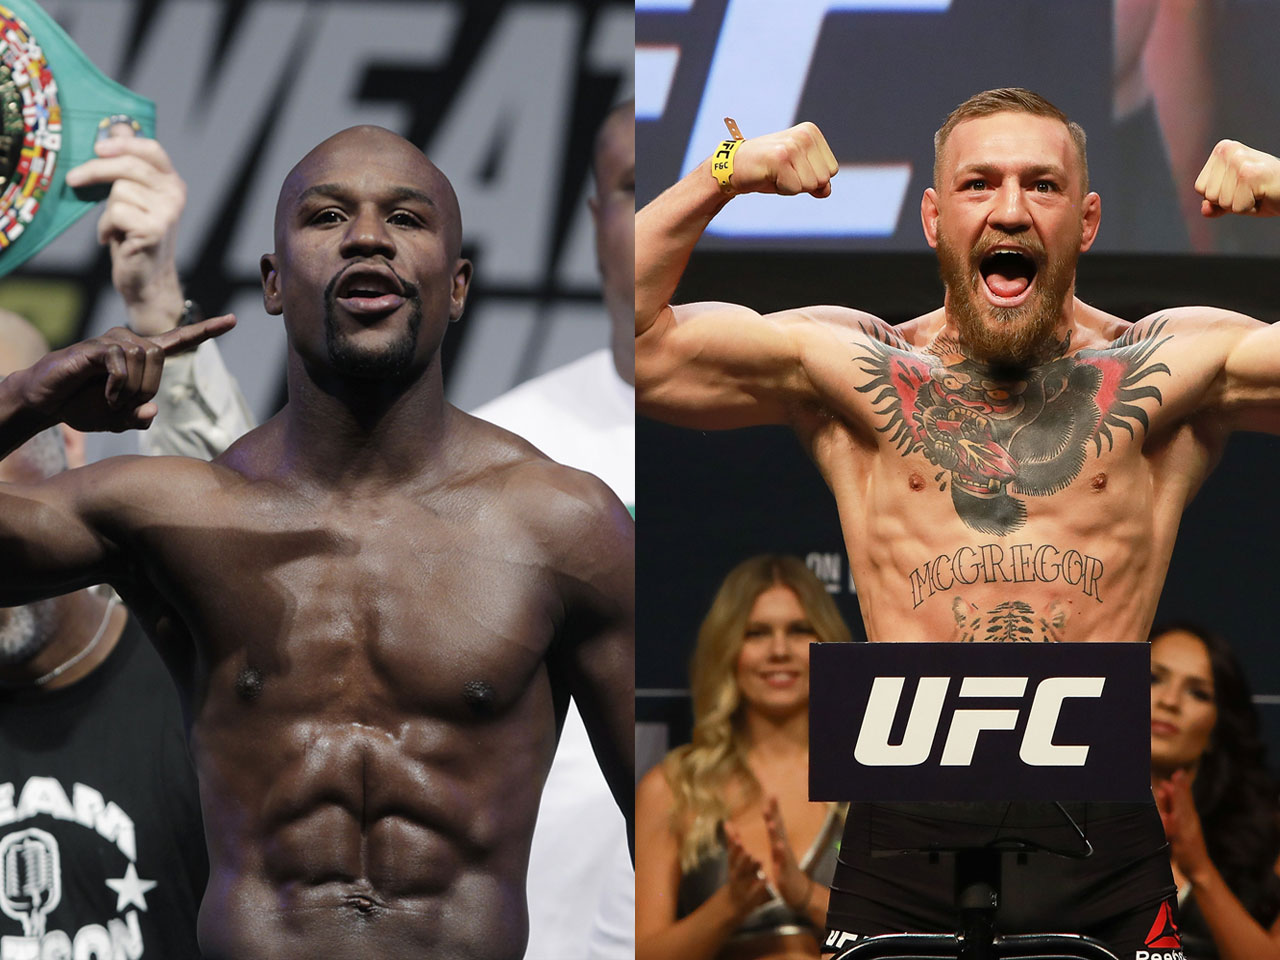 Where to bet on floyd vs connor mcgregor reddit sports betting legal in usa